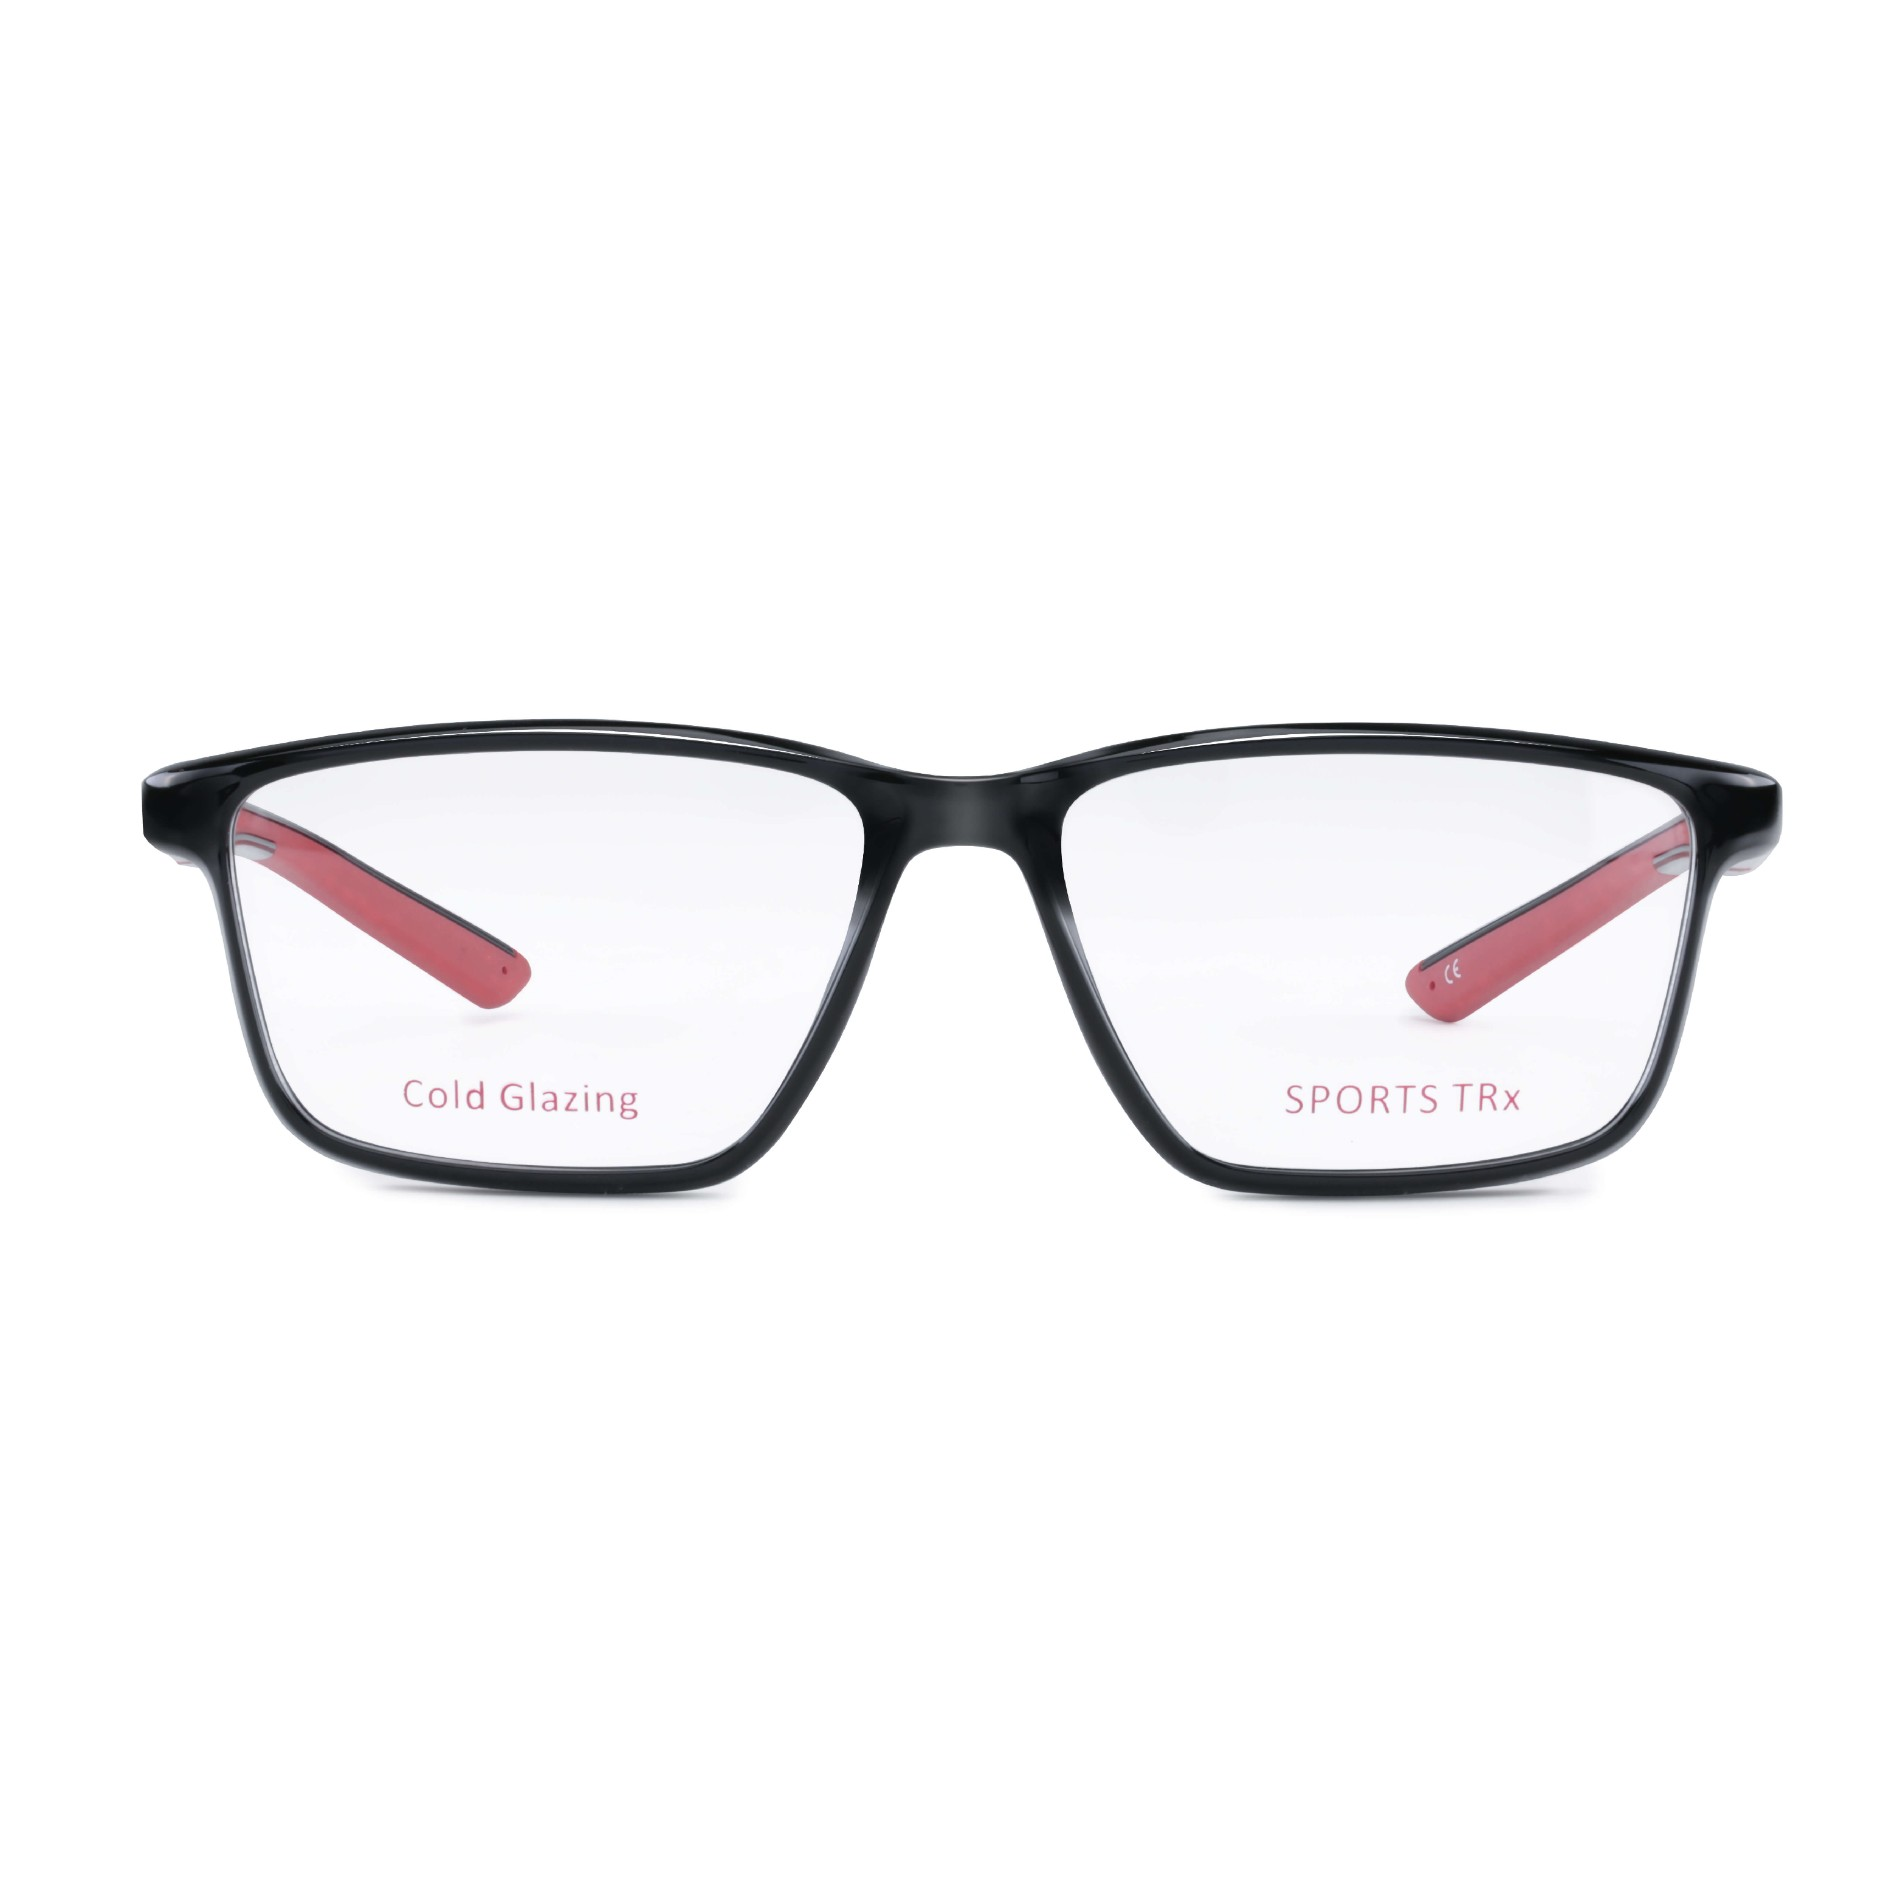 Sports TR90 Glasses High Quality Outdoor Prescription Eyeglasses Frames with Interchangeable Face Shield Manufacturers, Sports TR90 Glasses High Quality Outdoor Prescription Eyeglasses Frames with Interchangeable Face Shield Factory, Supply Sports TR90 Glasses High Quality Outdoor Prescription Eyeglasses Frames with Interchangeable Face Shield